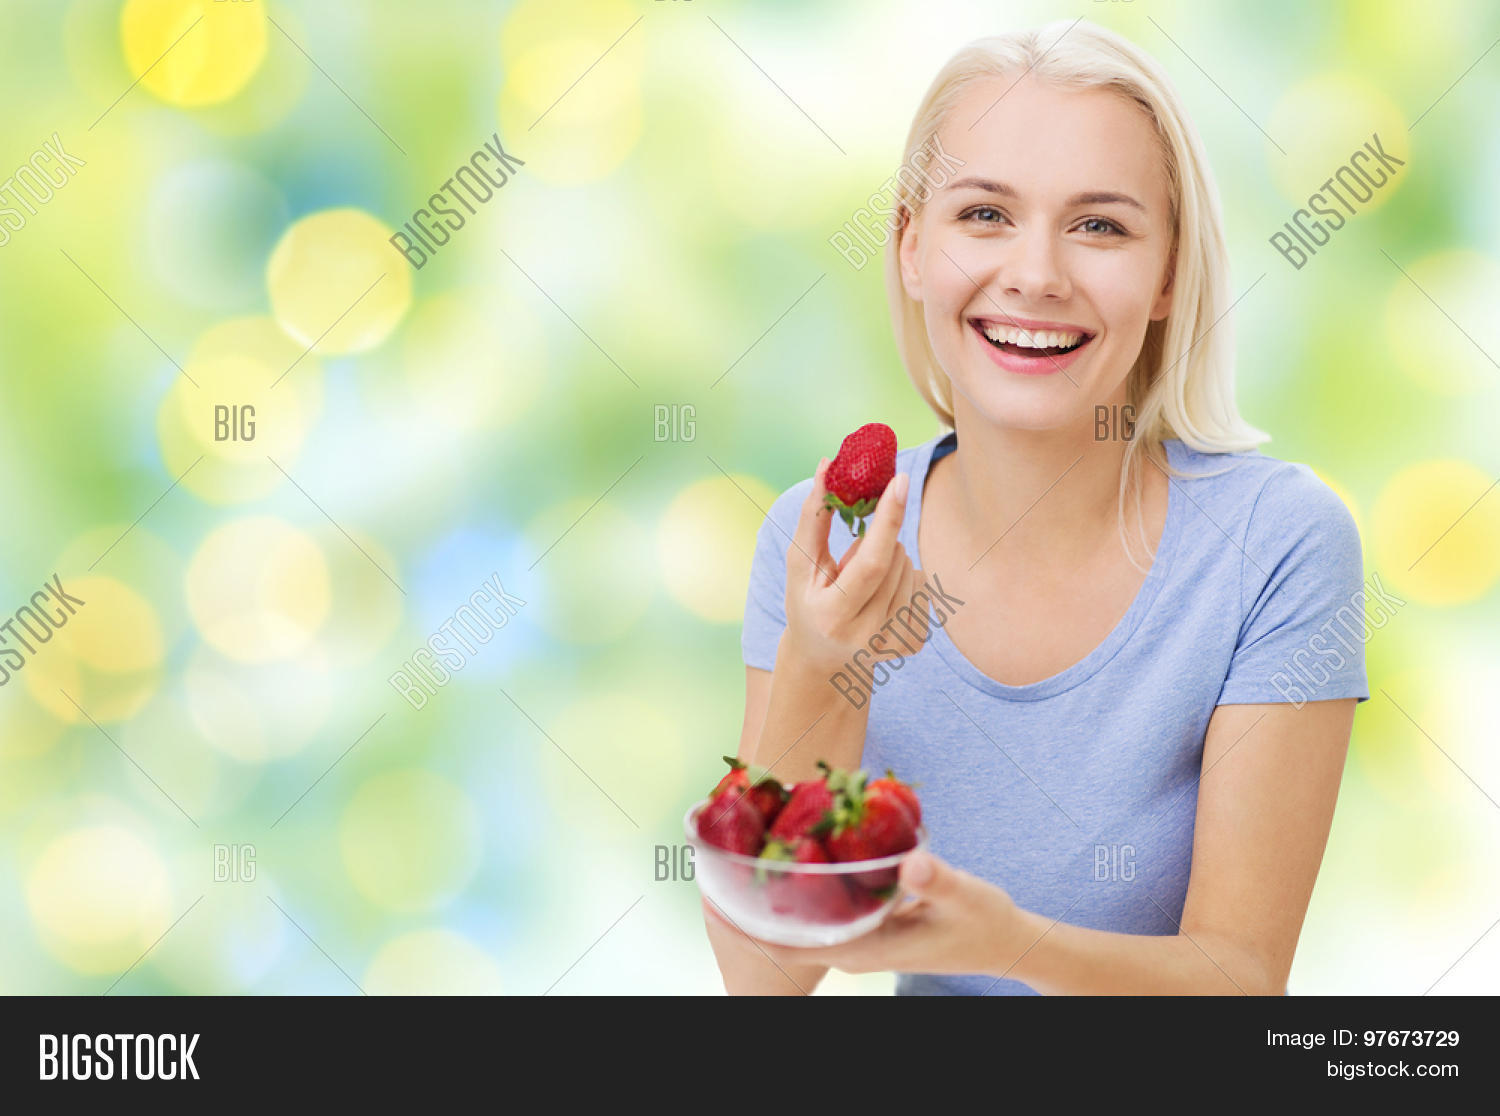 a6131f5d161b1 Healthy Eating